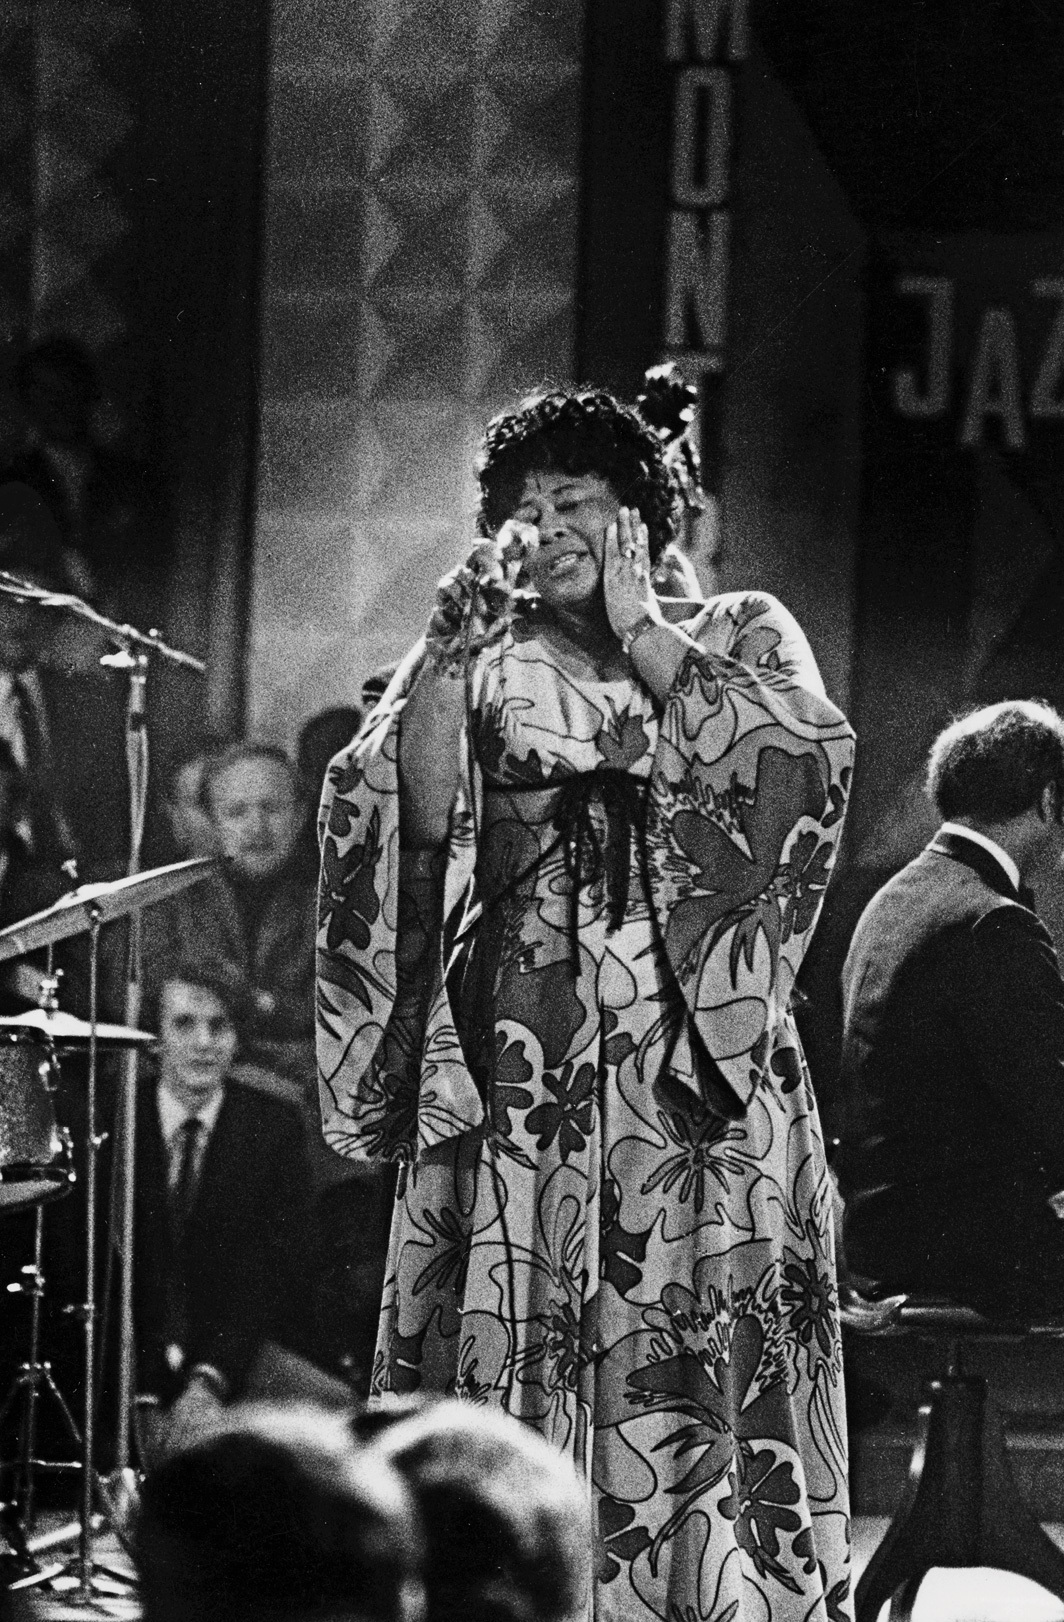 Ella Fitzgerald performing at the Montreux Jazz Festival, Switzerland, June 22, 1969. Photo: Dany Gignoux.